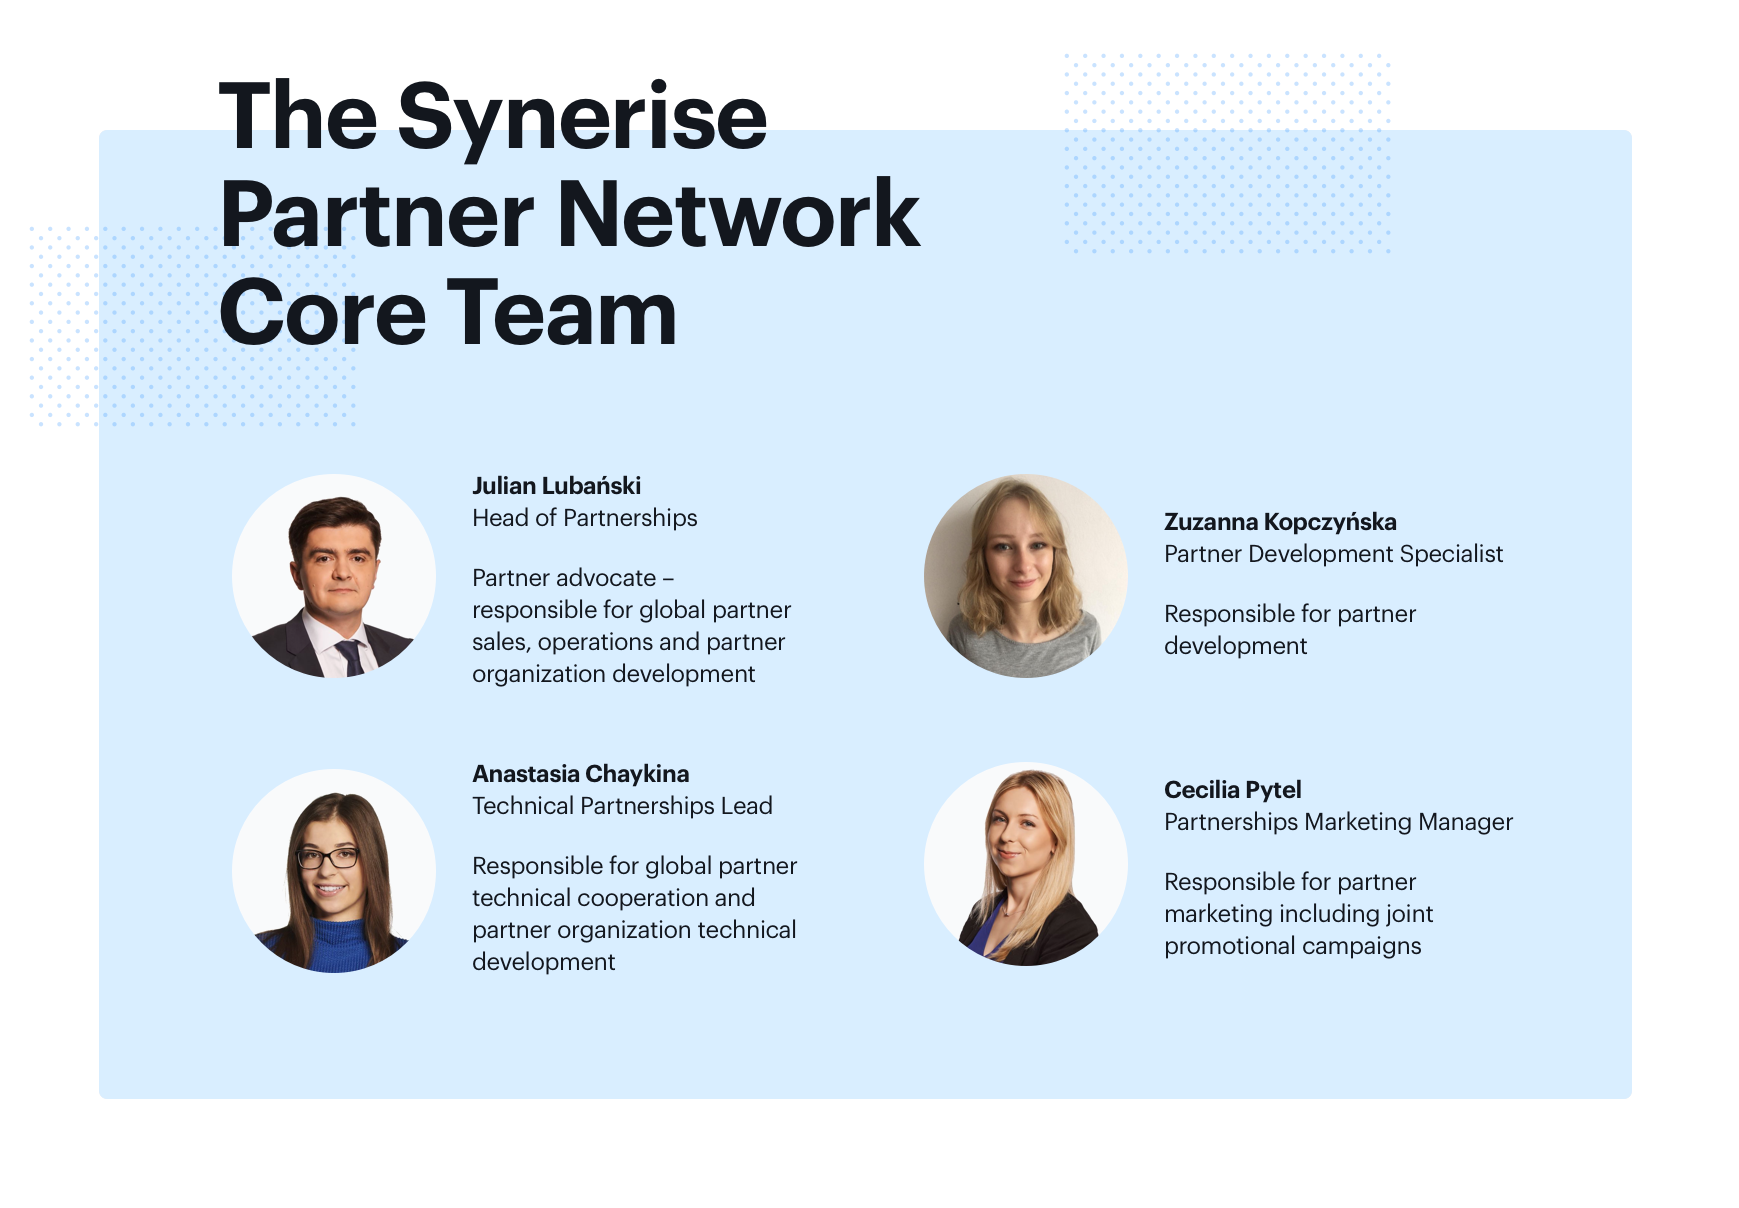 The Synerise Partner Network Core Team photo: Julian Lubański, Zuzanna Kopczyńska, Anastasia Chaykina, Cecilia Pytel